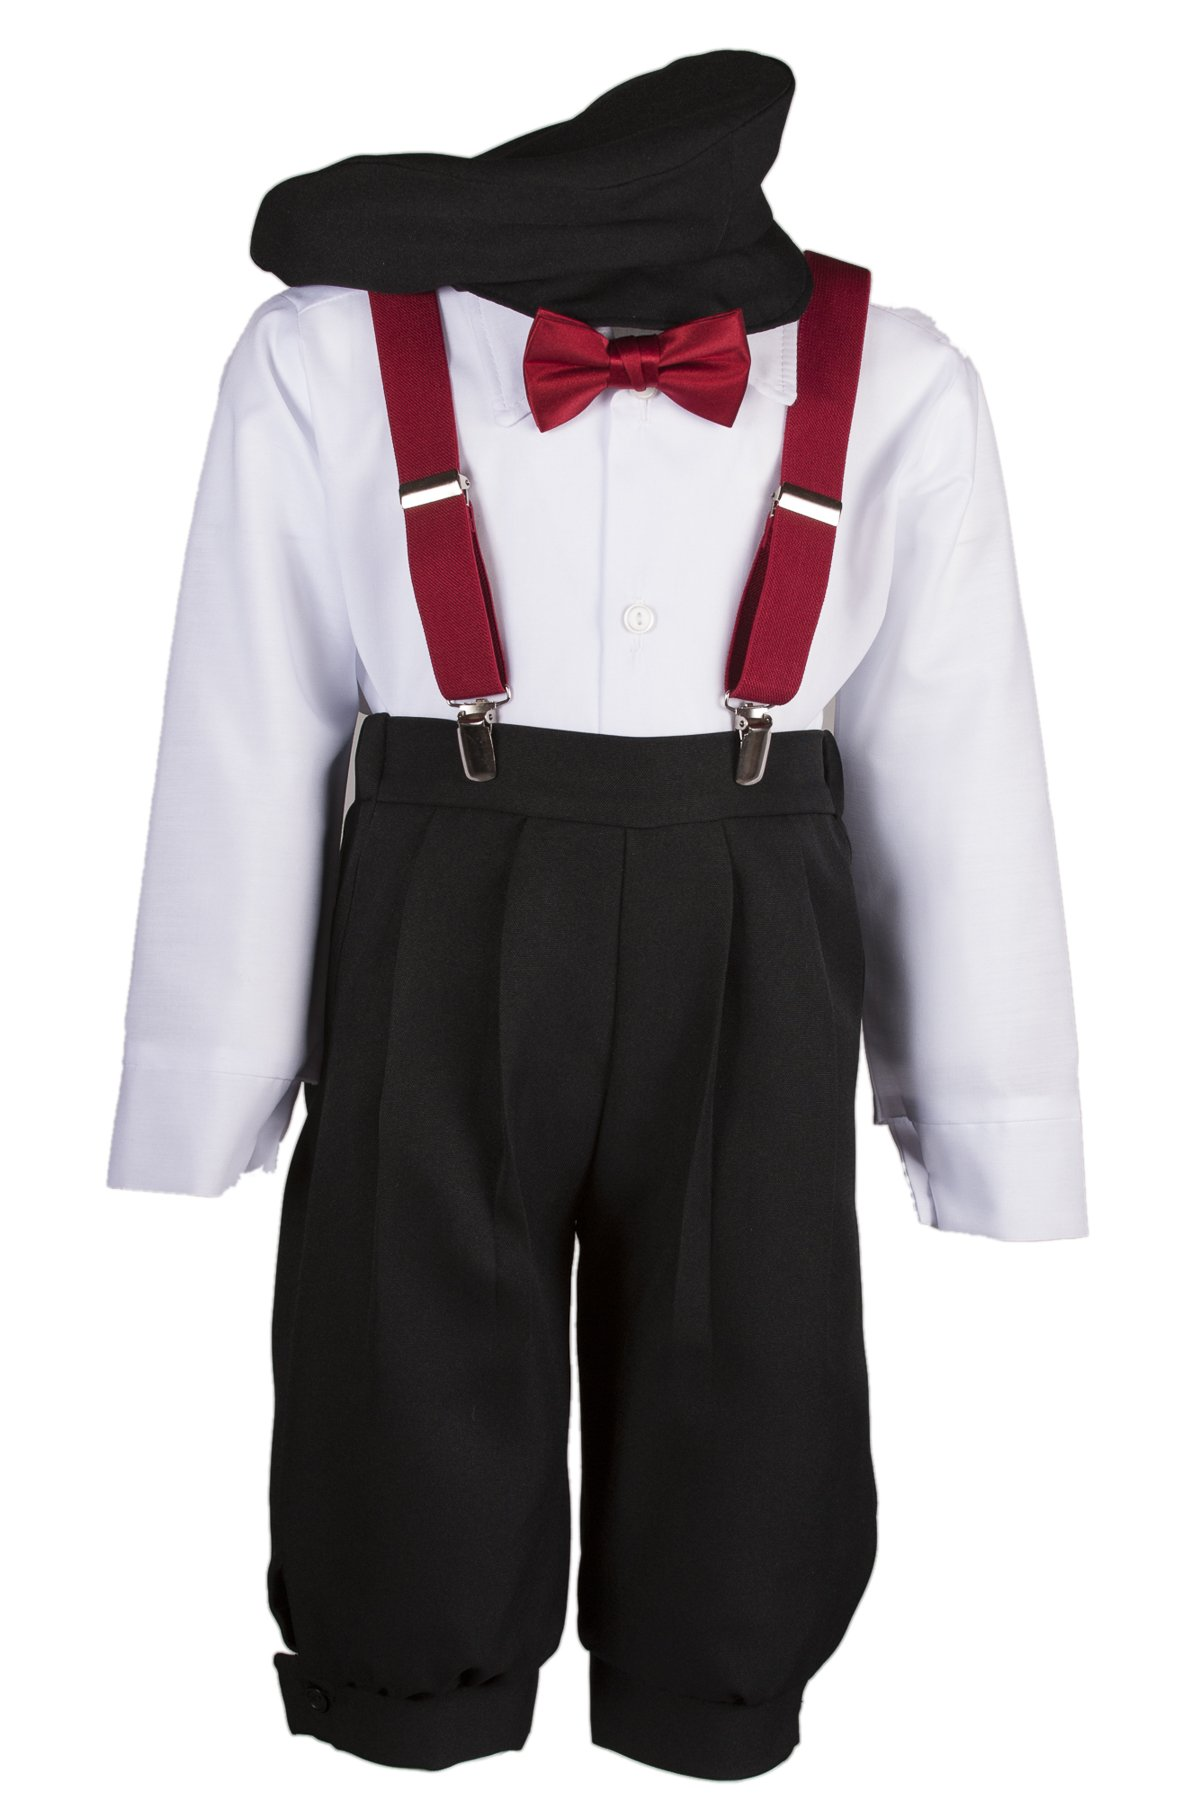 Boys Black Knicker Set with Apple Suspenders and Apple Bow Tie (Boys 5)